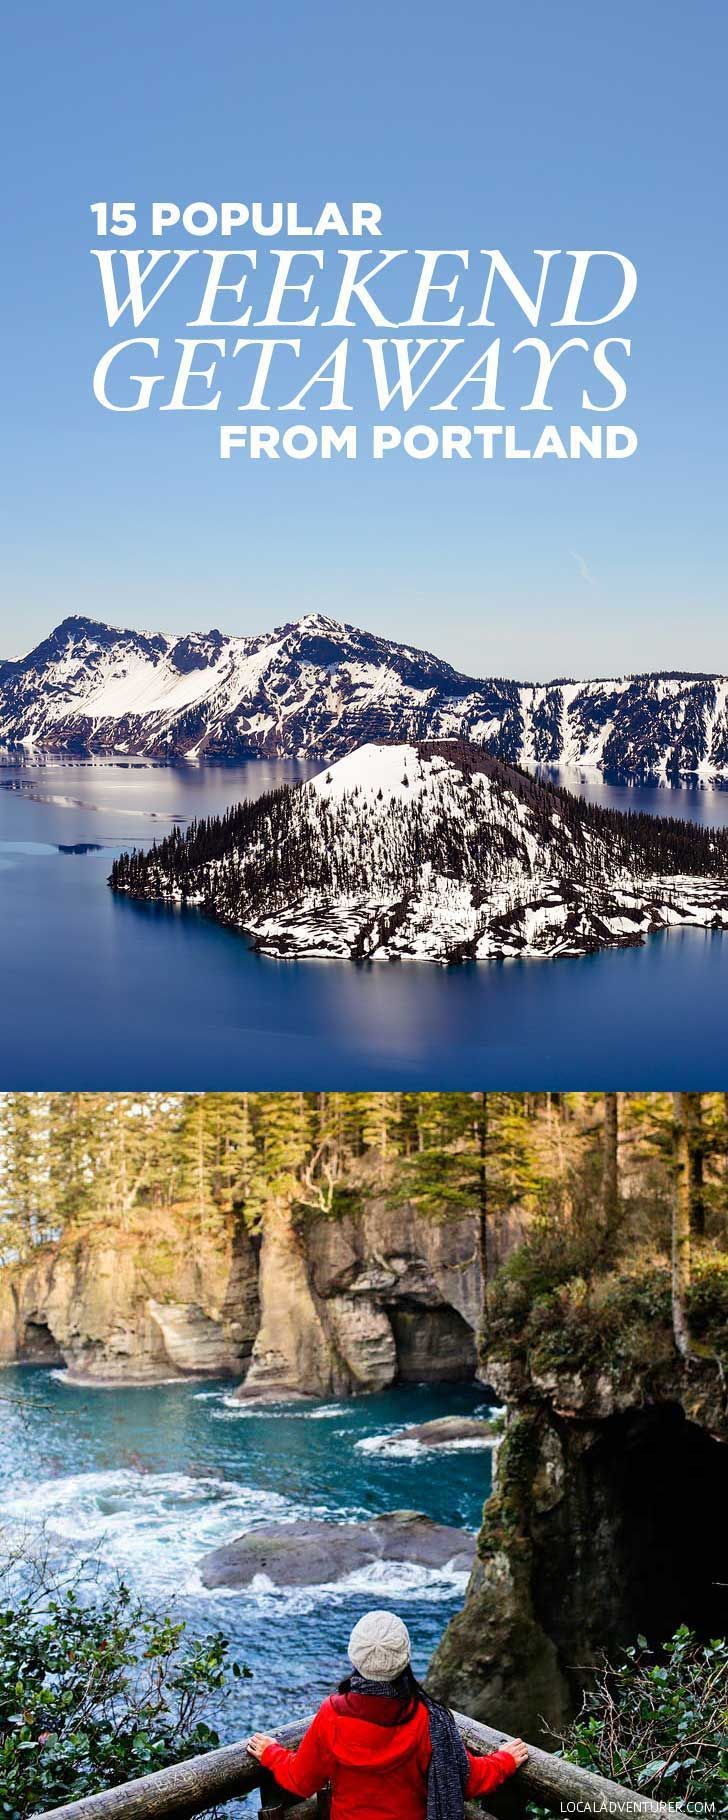 best weekend trips from portland oregon » local adventures in pdx